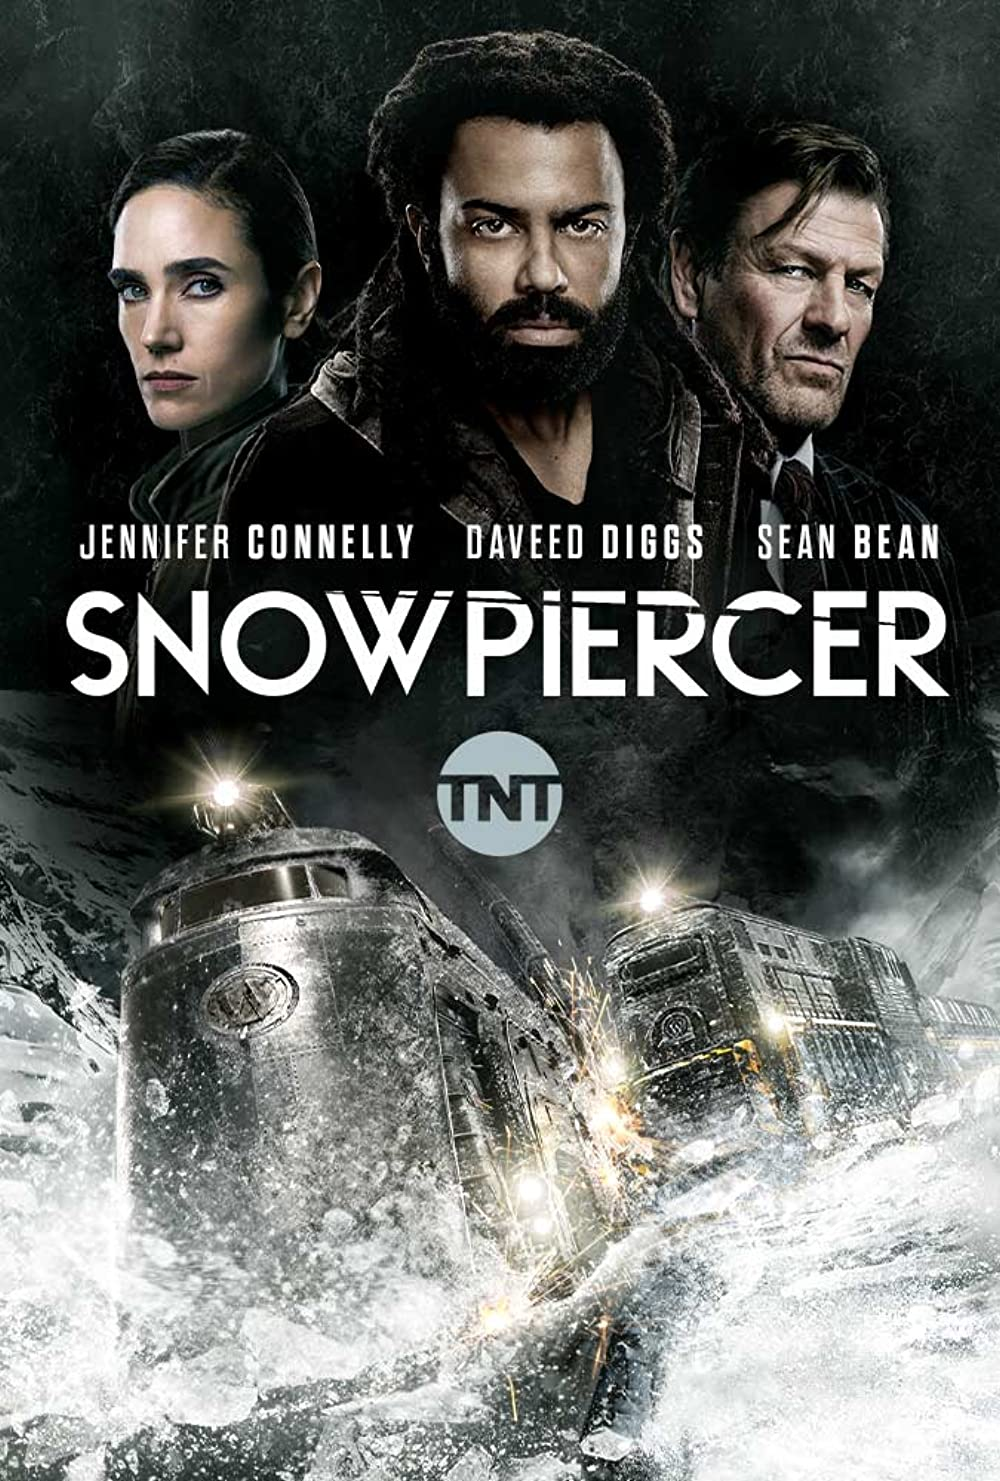 Snowpiercer 2021 S02EP05 Hindi Dual Audio NF Series 720p HDRip ESubs 340MB Download